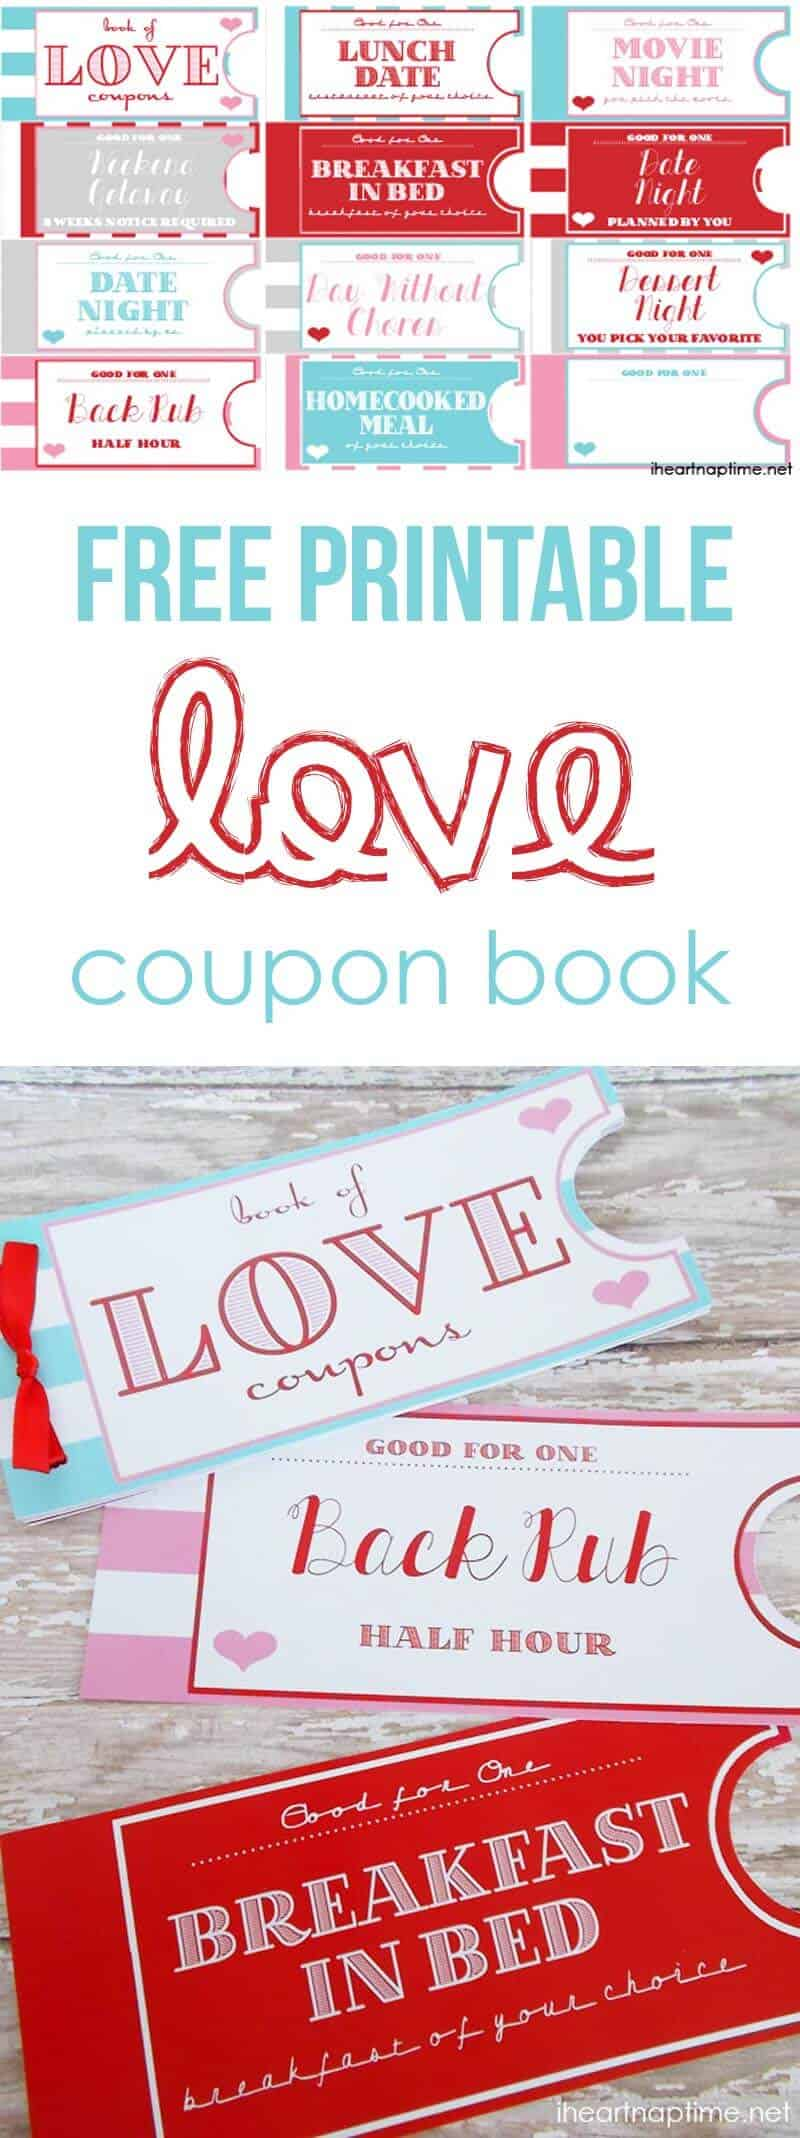 Discount coupons for books